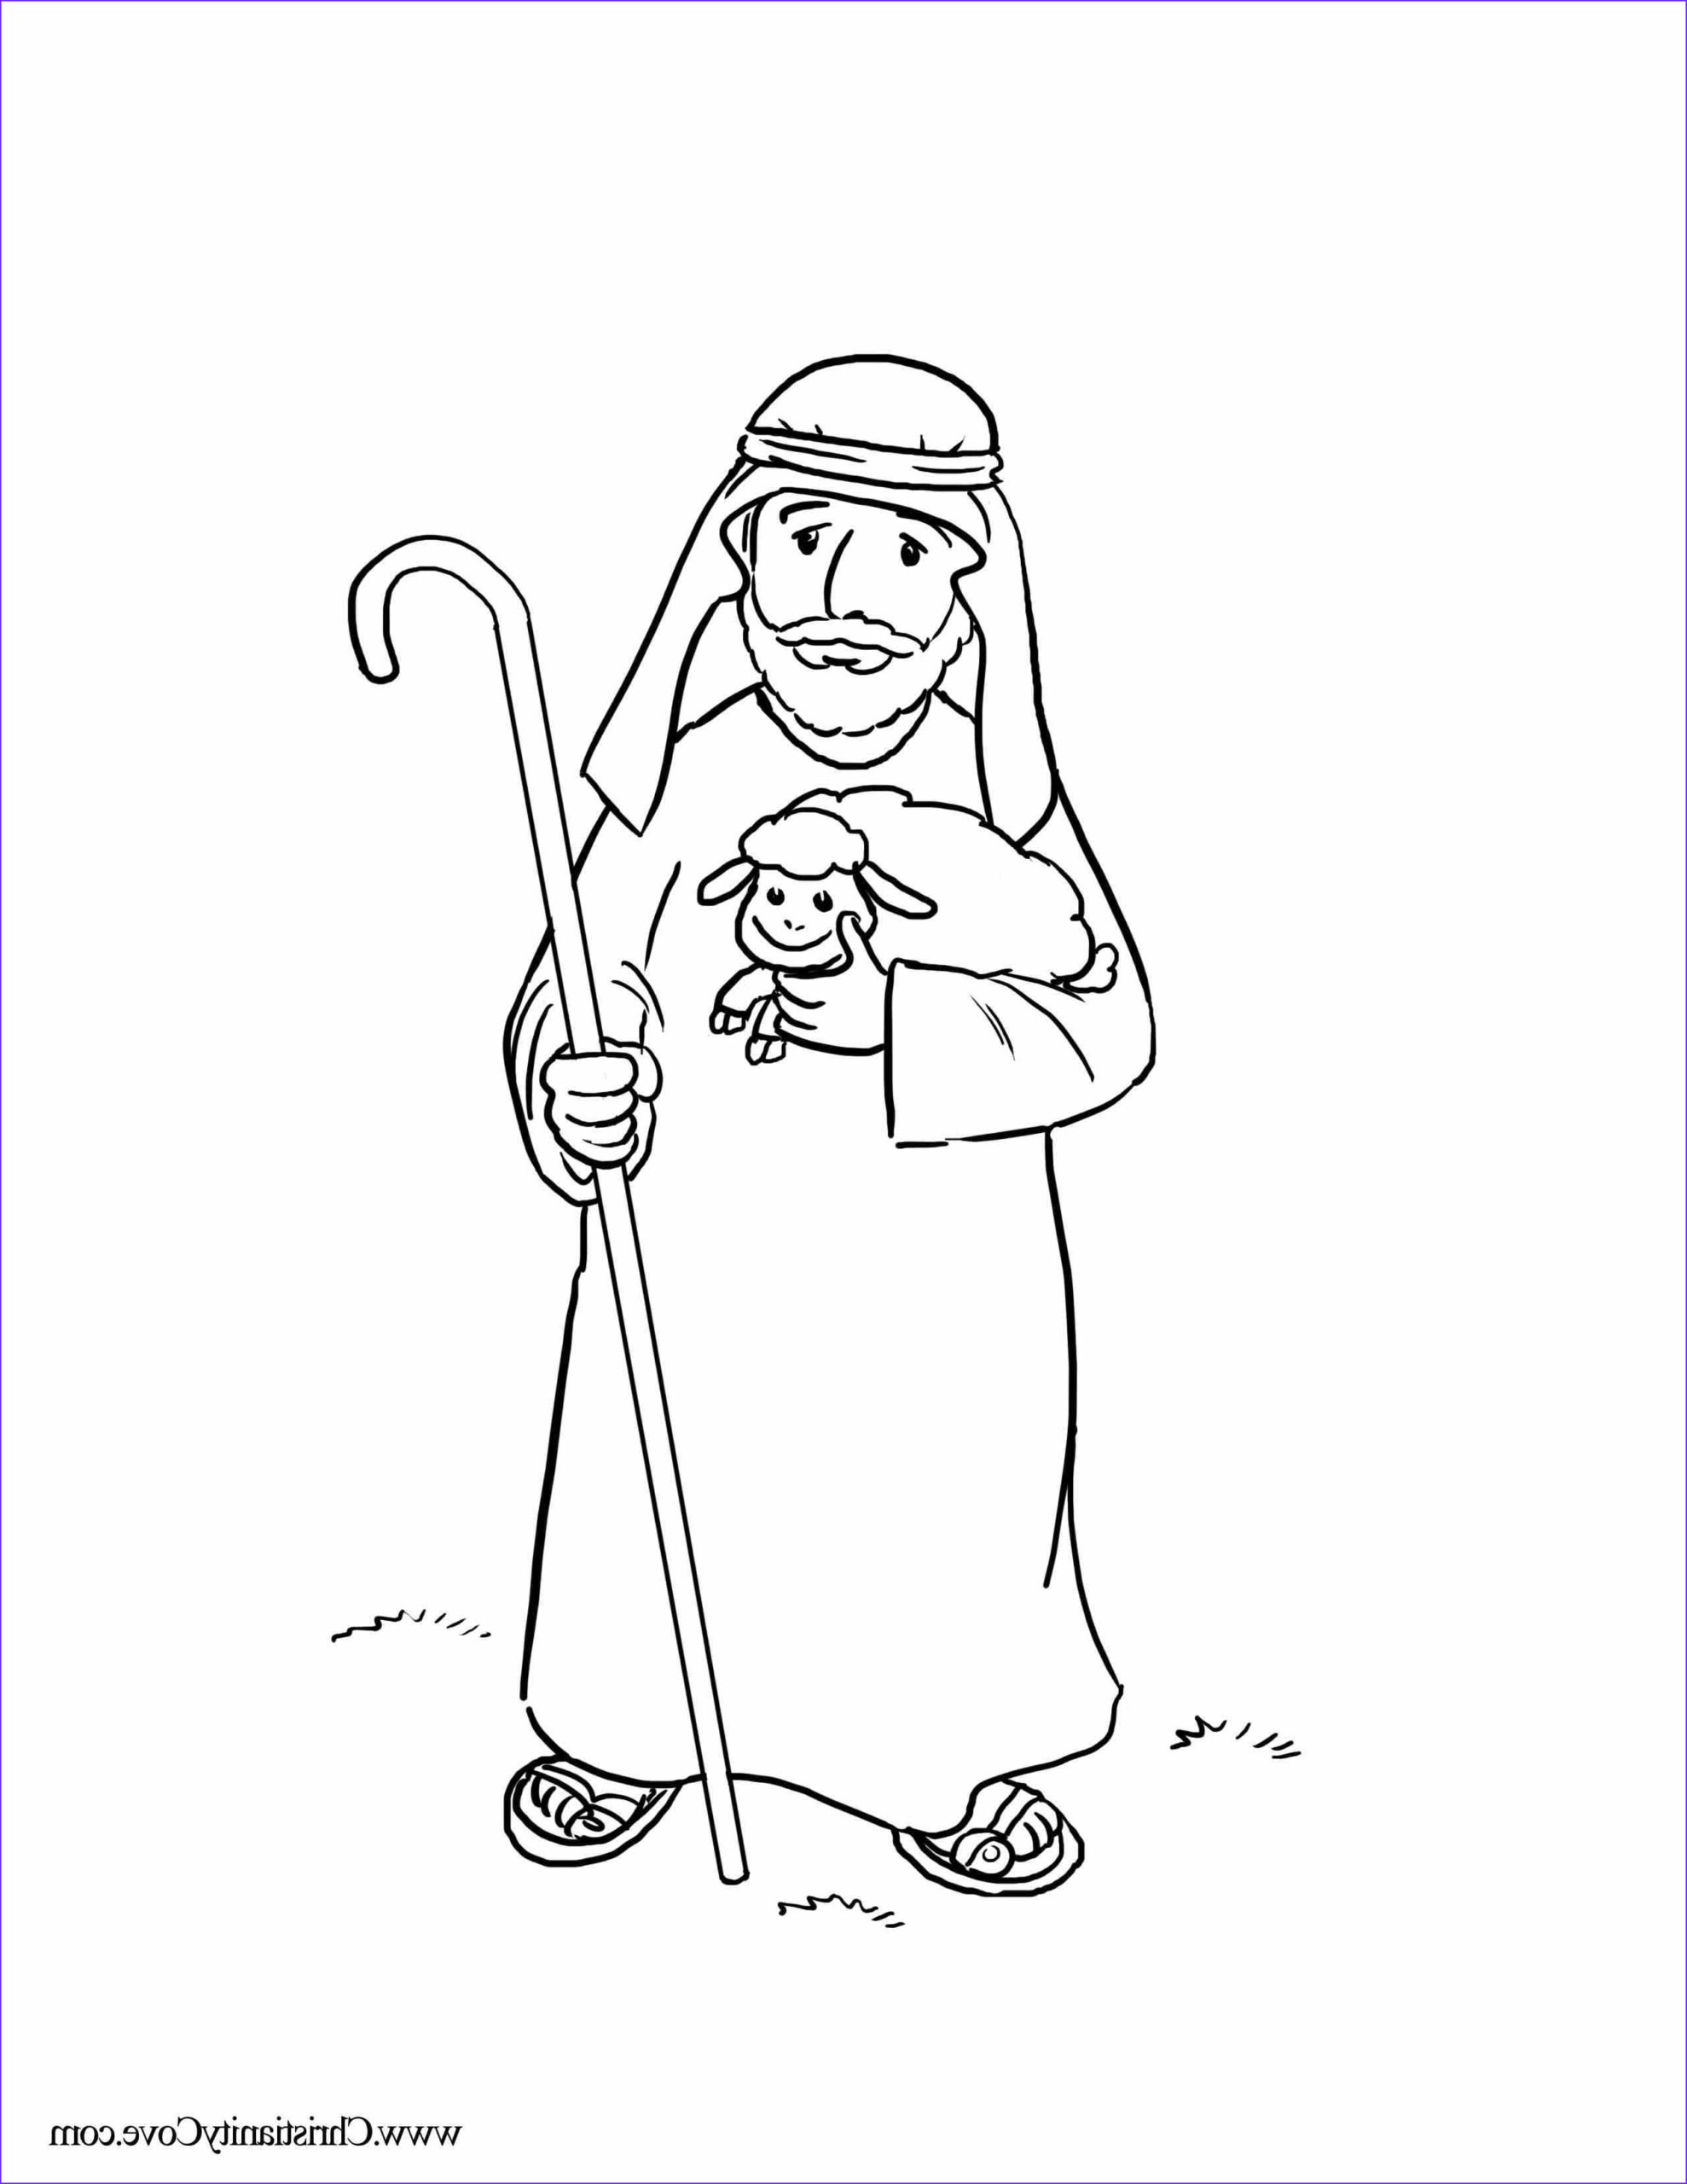 Jesus the Good Shepherd Coloring Page Inspirational Gallery Bible Printables Coloring Pages for Sunday School